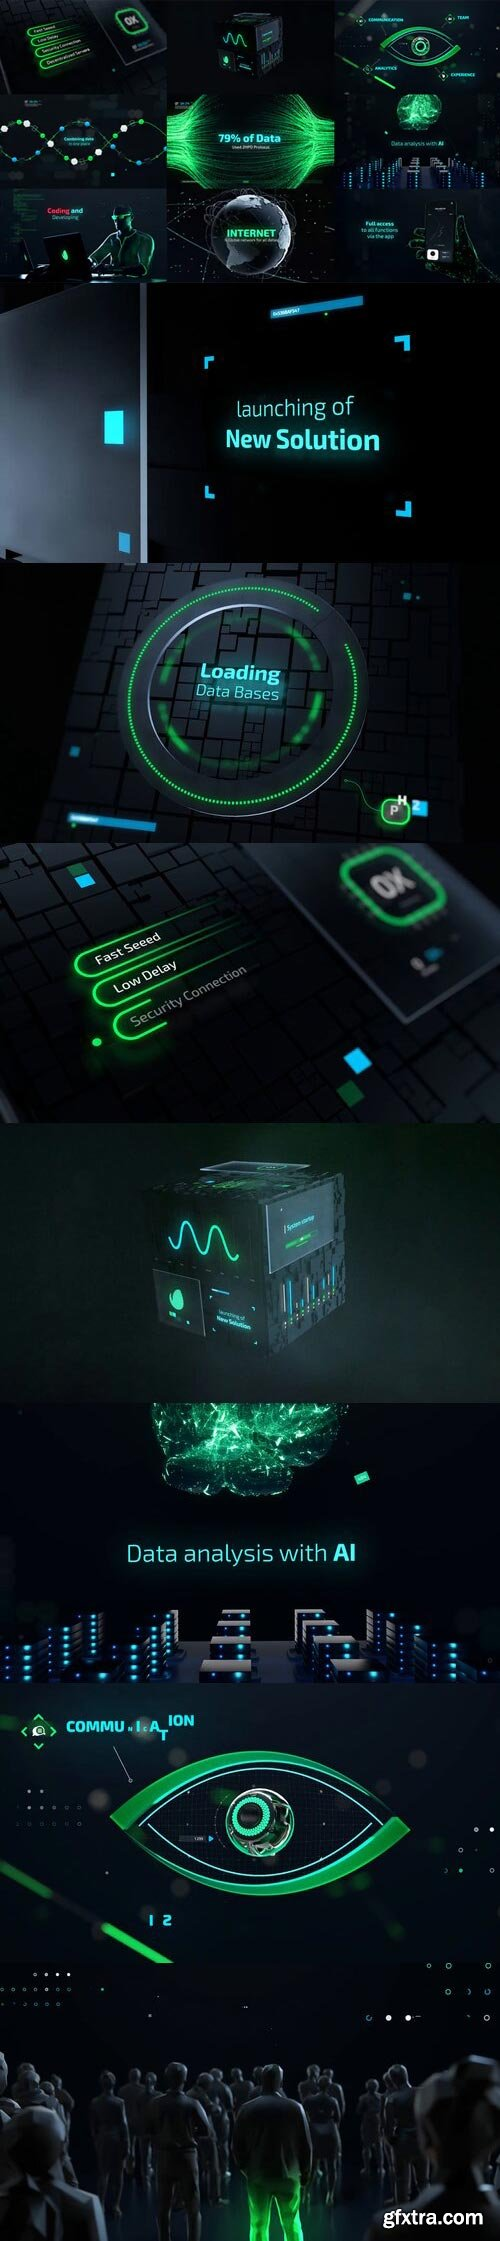 Videohive - Cyber Technology Trailer - 31019182